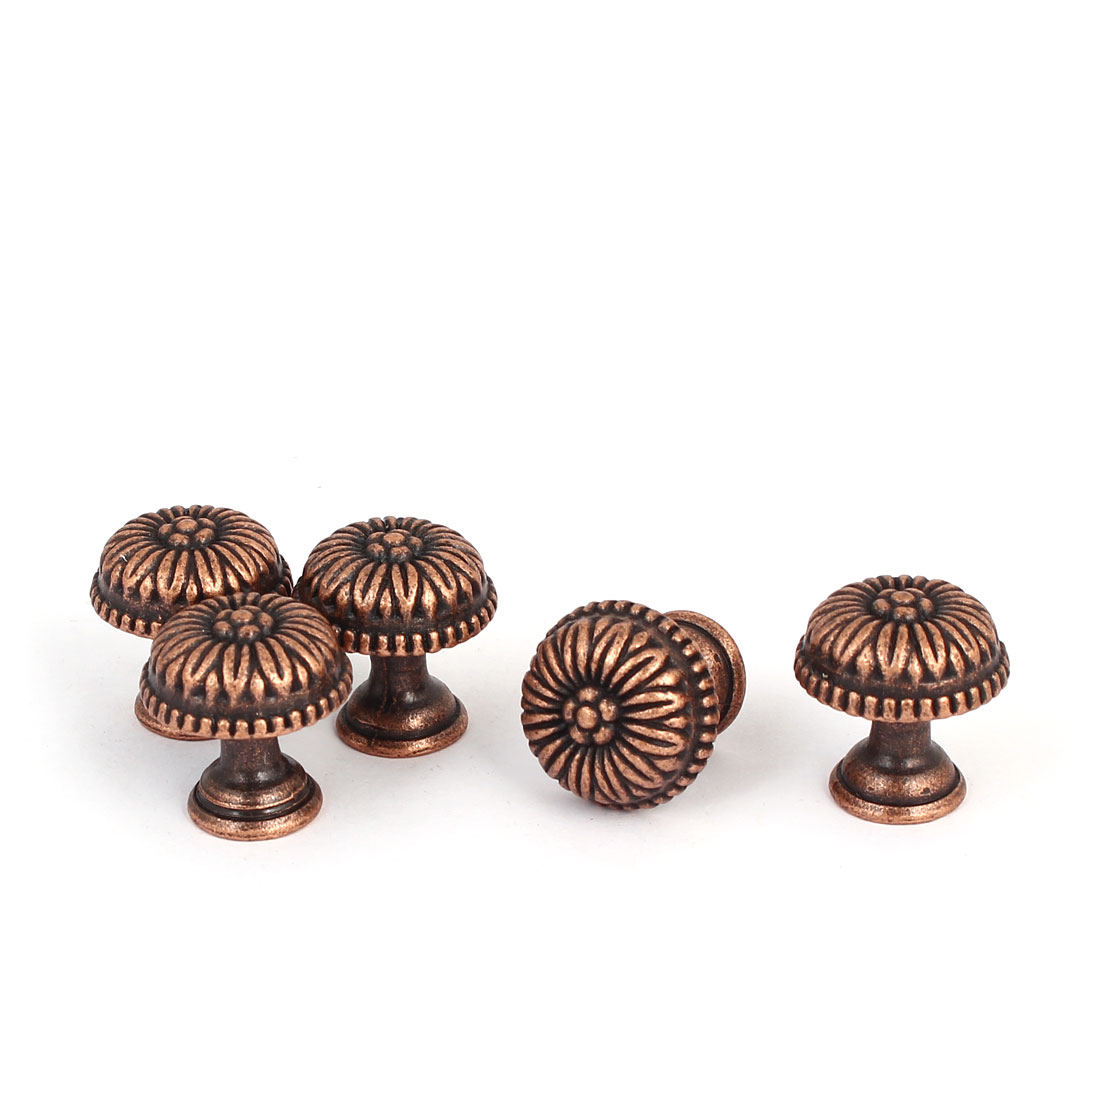 Drawer Zinc Alloy Retro Style Round Pull Handle Knob Copper Tone 22x23mm 5pcs